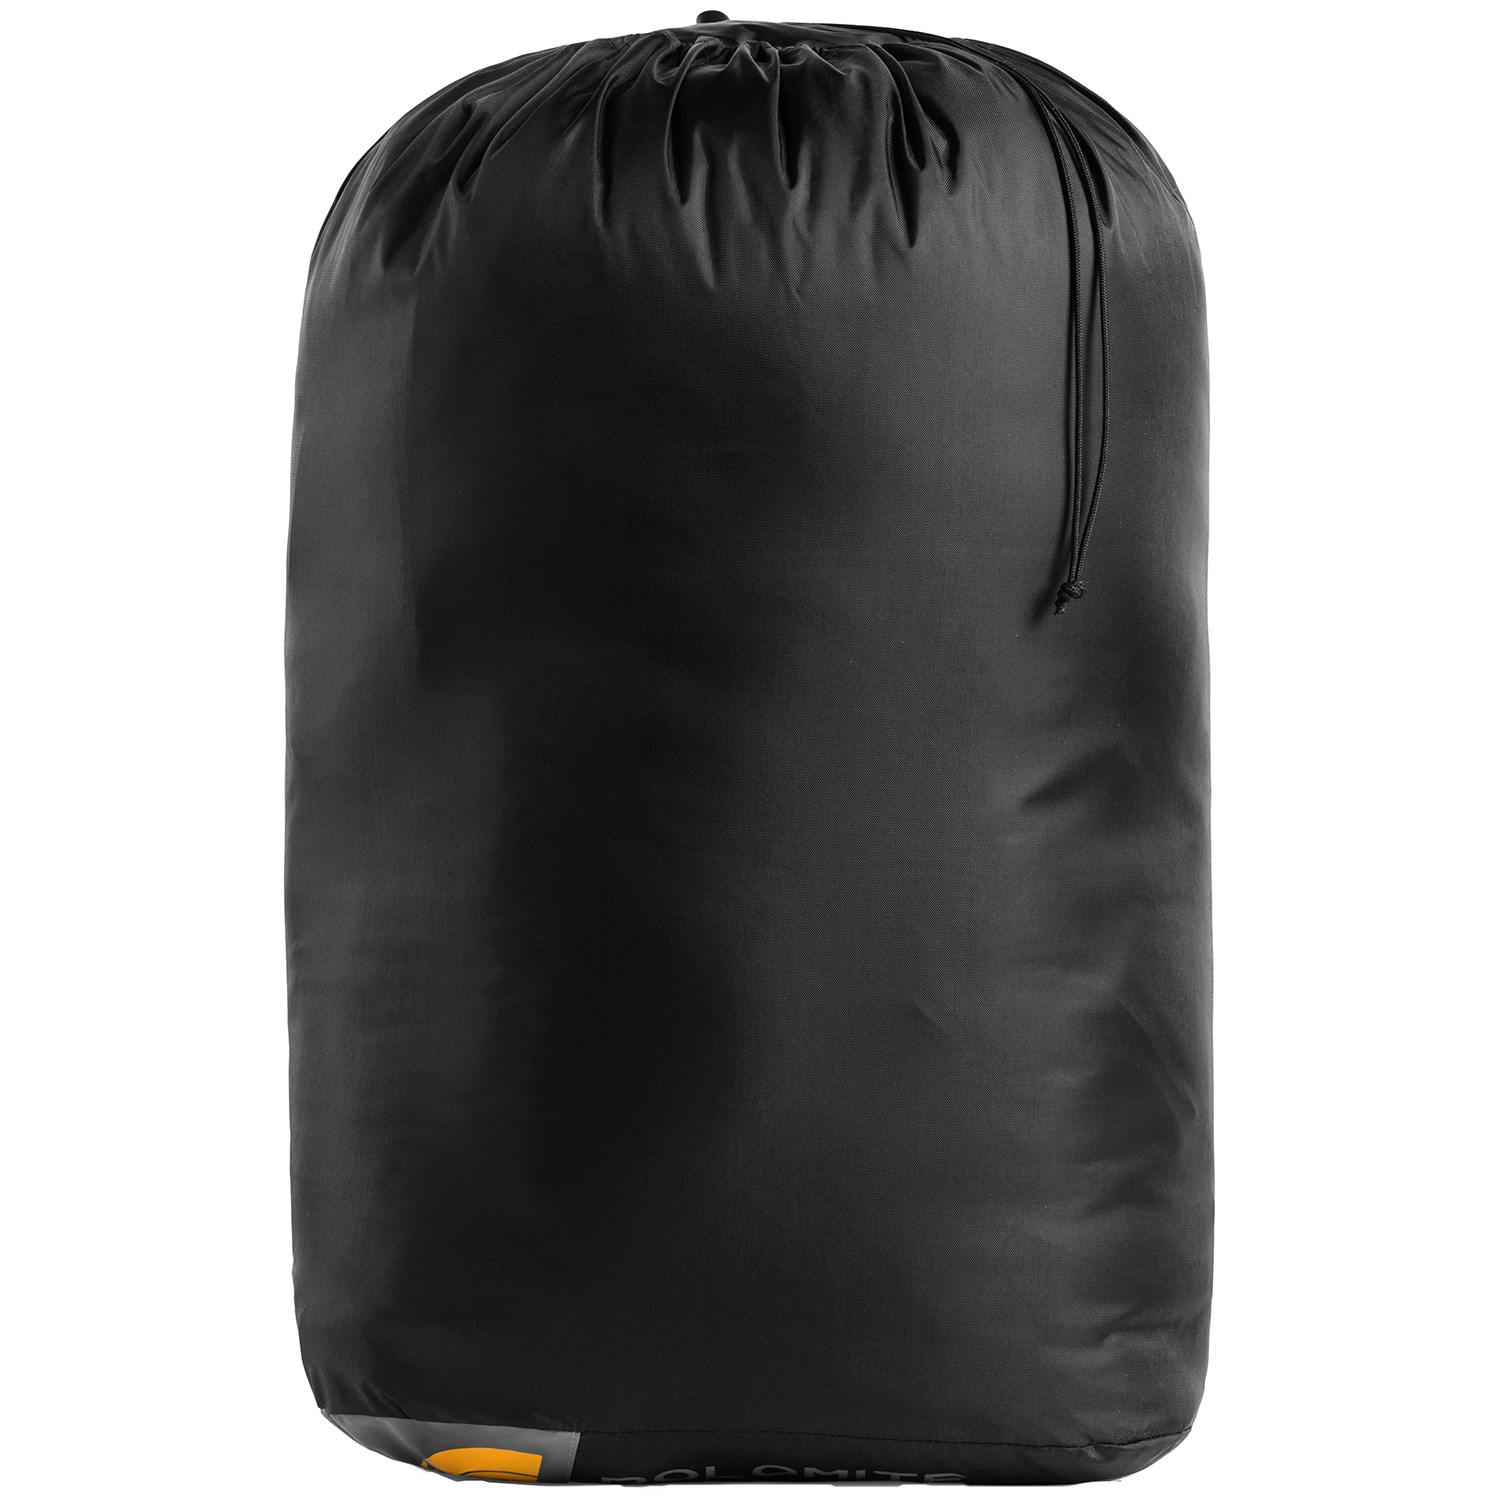 b0b014439 The North Face Dolomite Double 20F Sleeping Bag